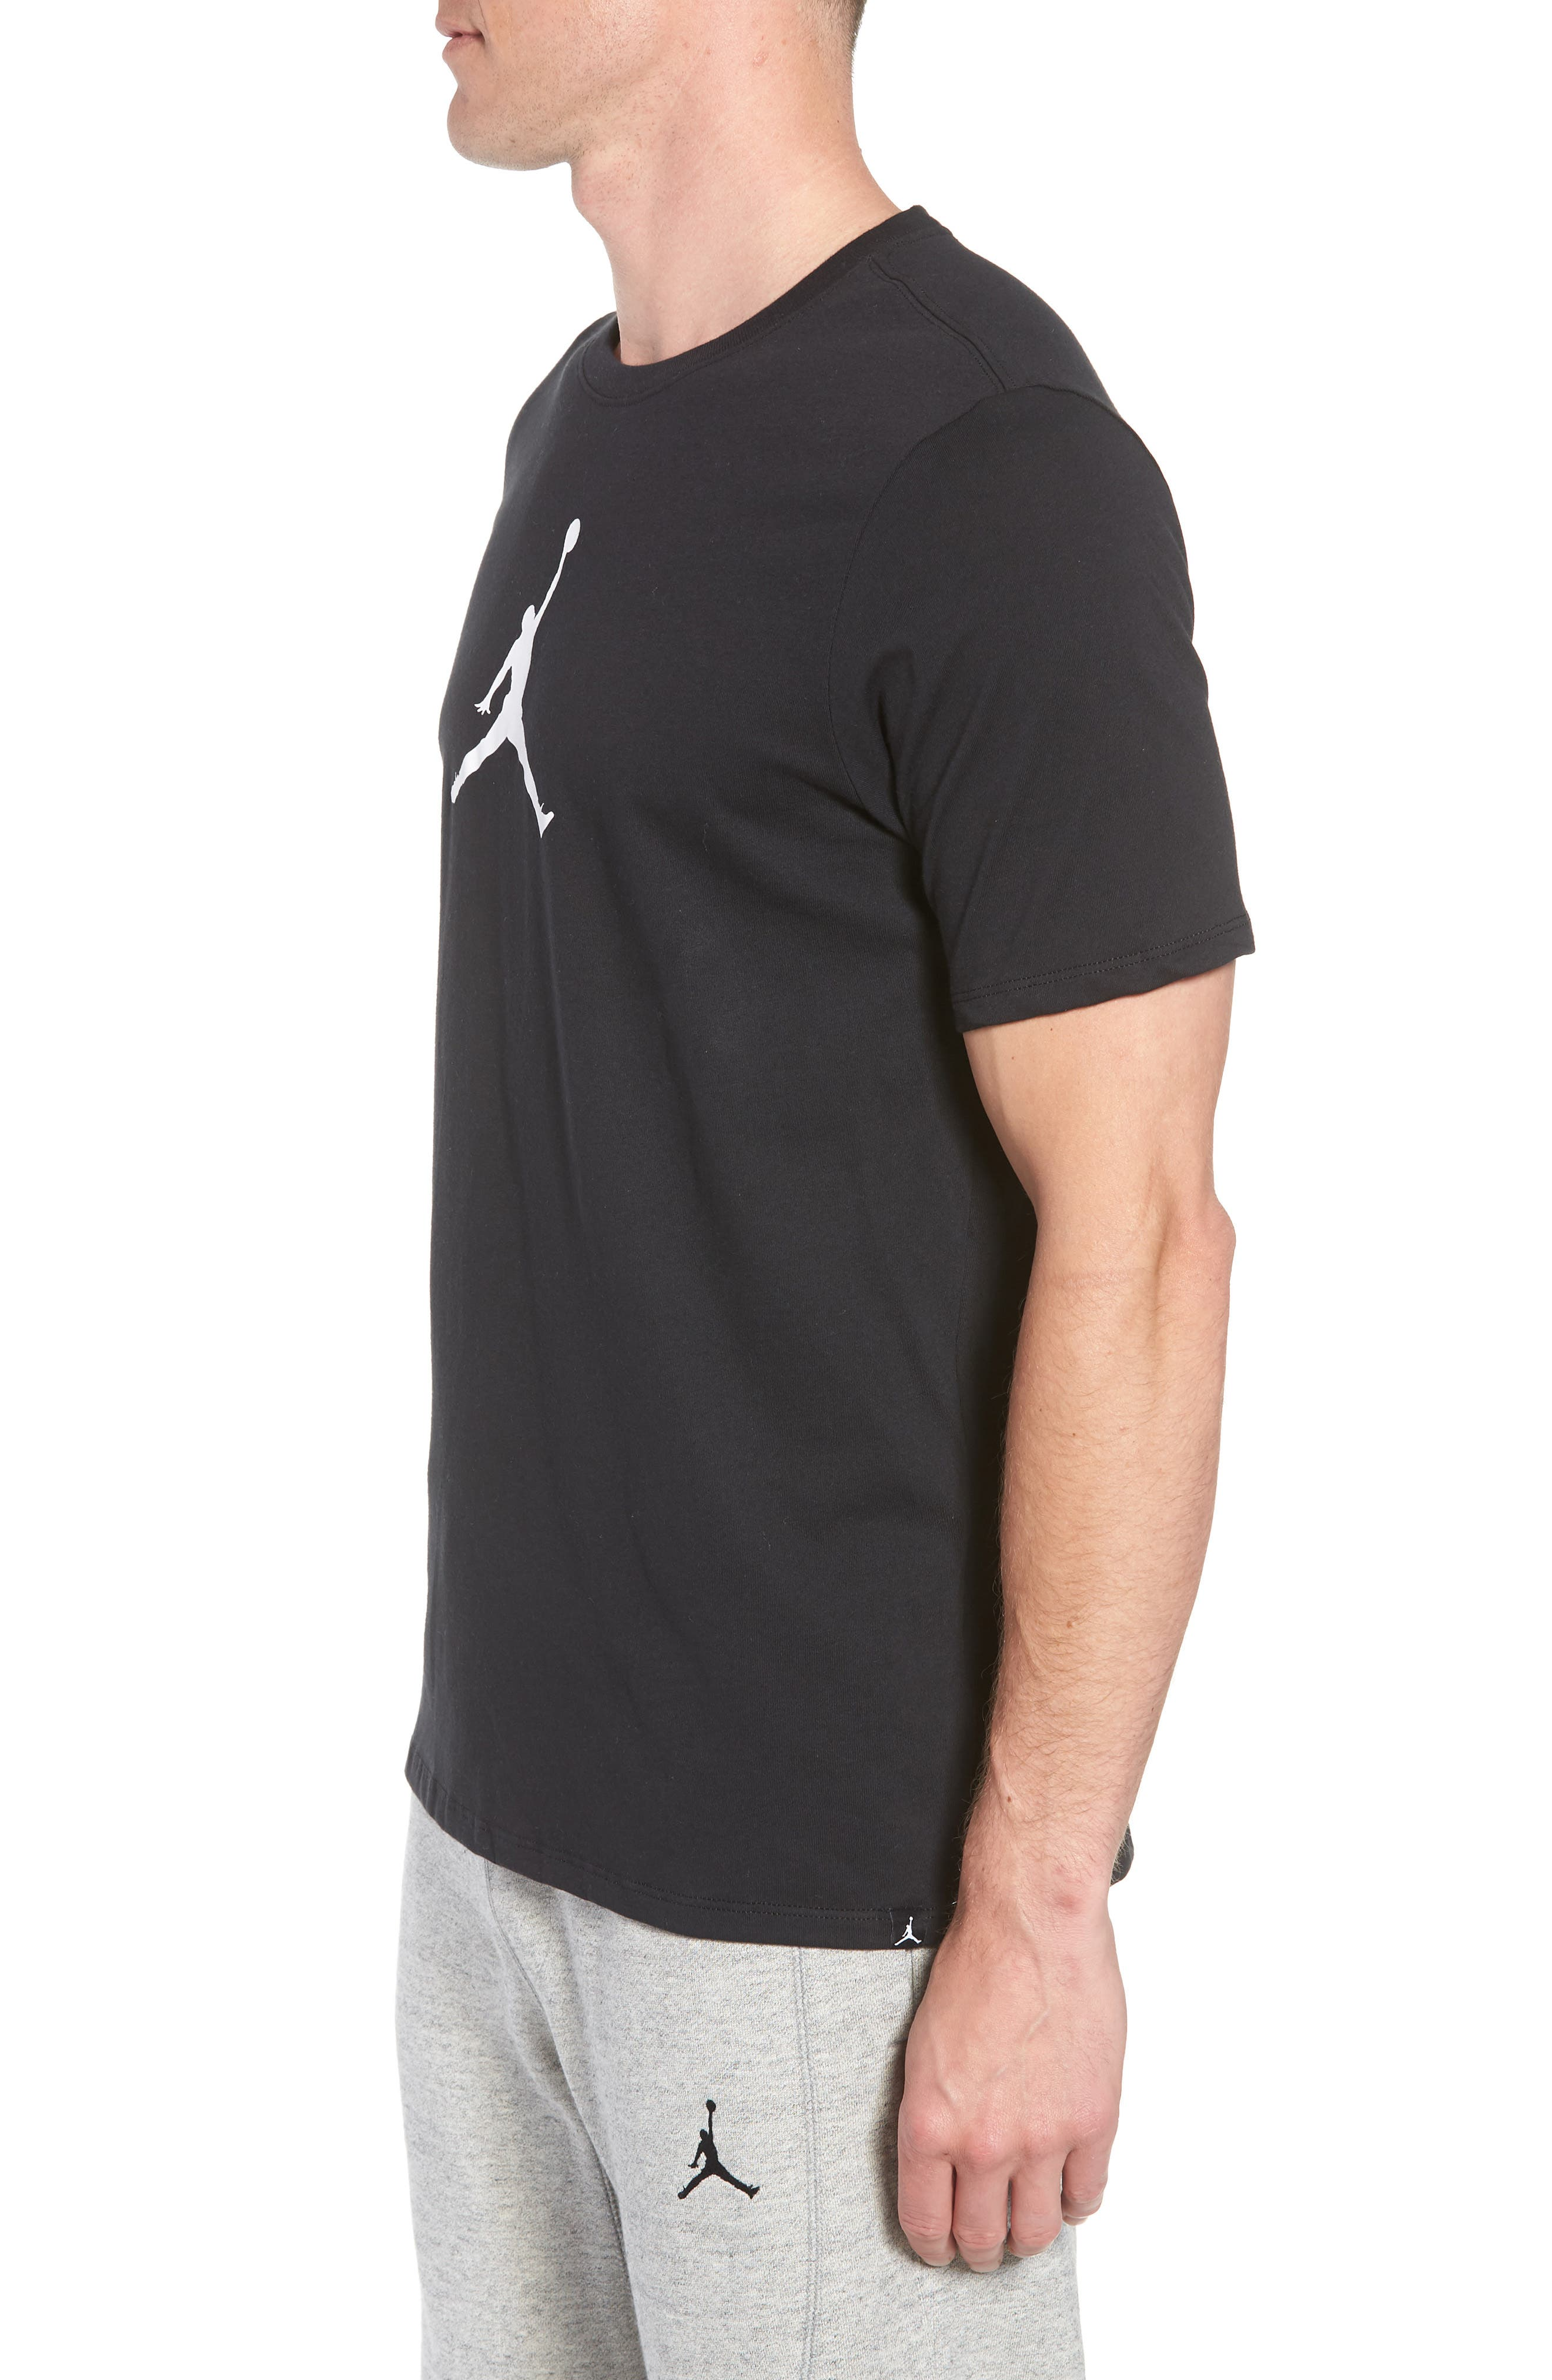 Iconic Jumpman Graphic T-Shirt,                             Alternate thumbnail 3, color,                             010